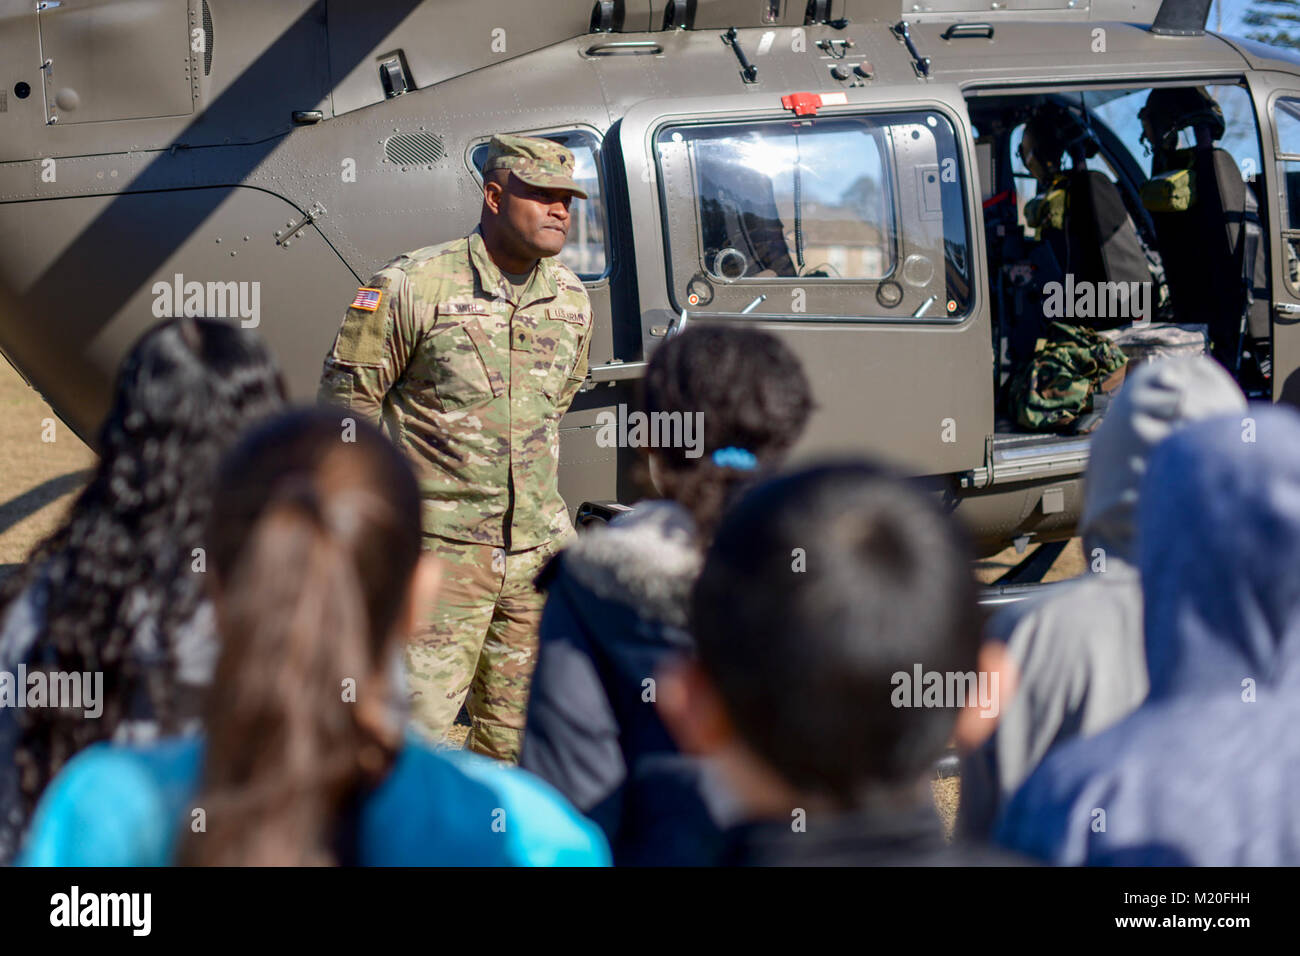 Spc  Kendell Smith, an Apachee Helicopter mechanic 449th